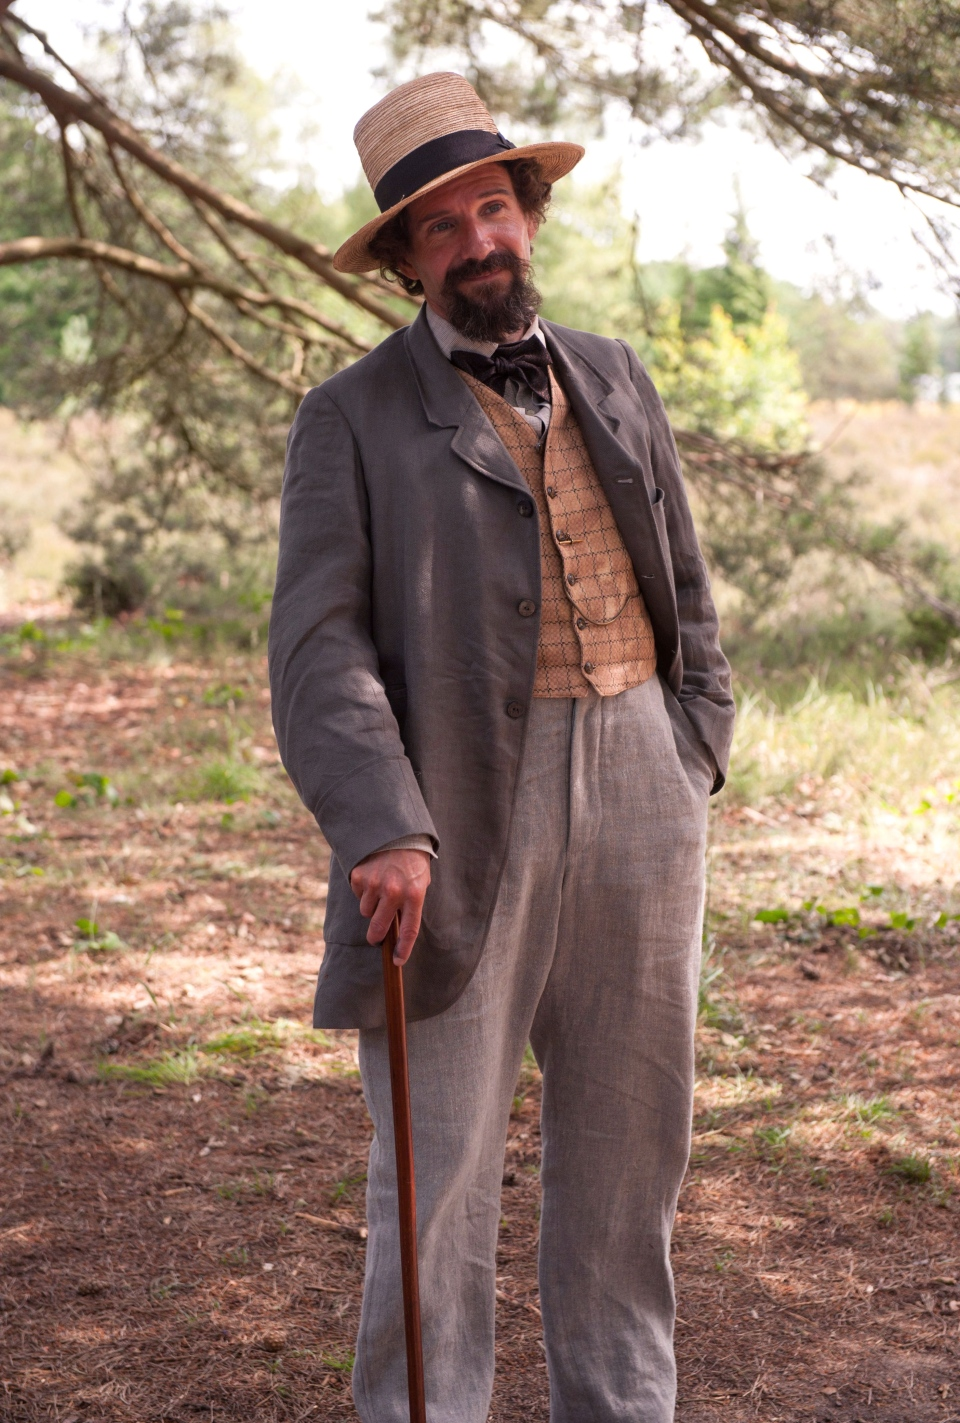 Ralph Fiennes as Charles Dickens in a scene from Mongrel Media's 'The Invisible Woman'